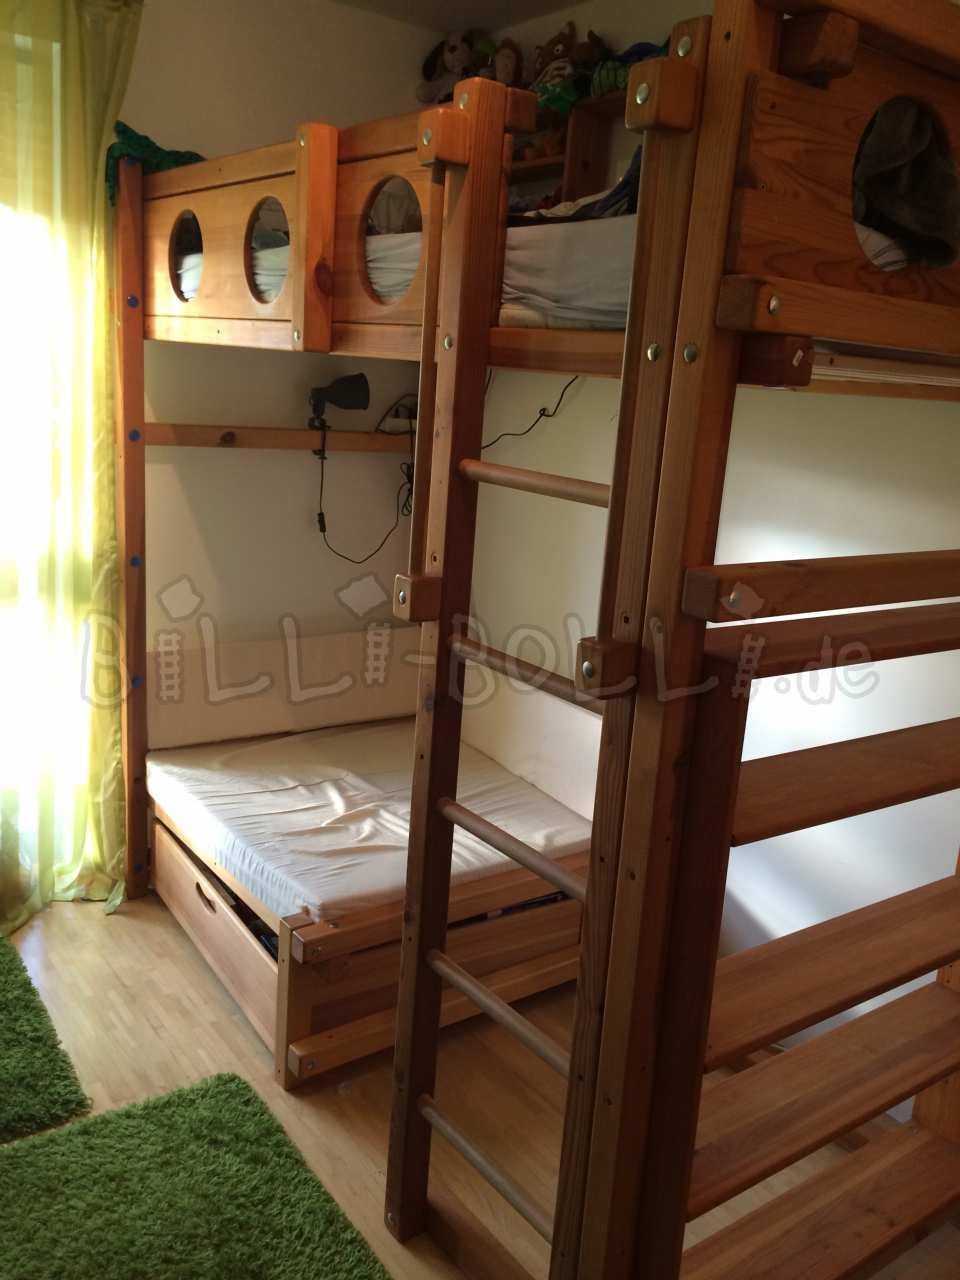 Collumsing high bed 90 x 200 cm, pine honey coloured oiled (second hand loft bed)